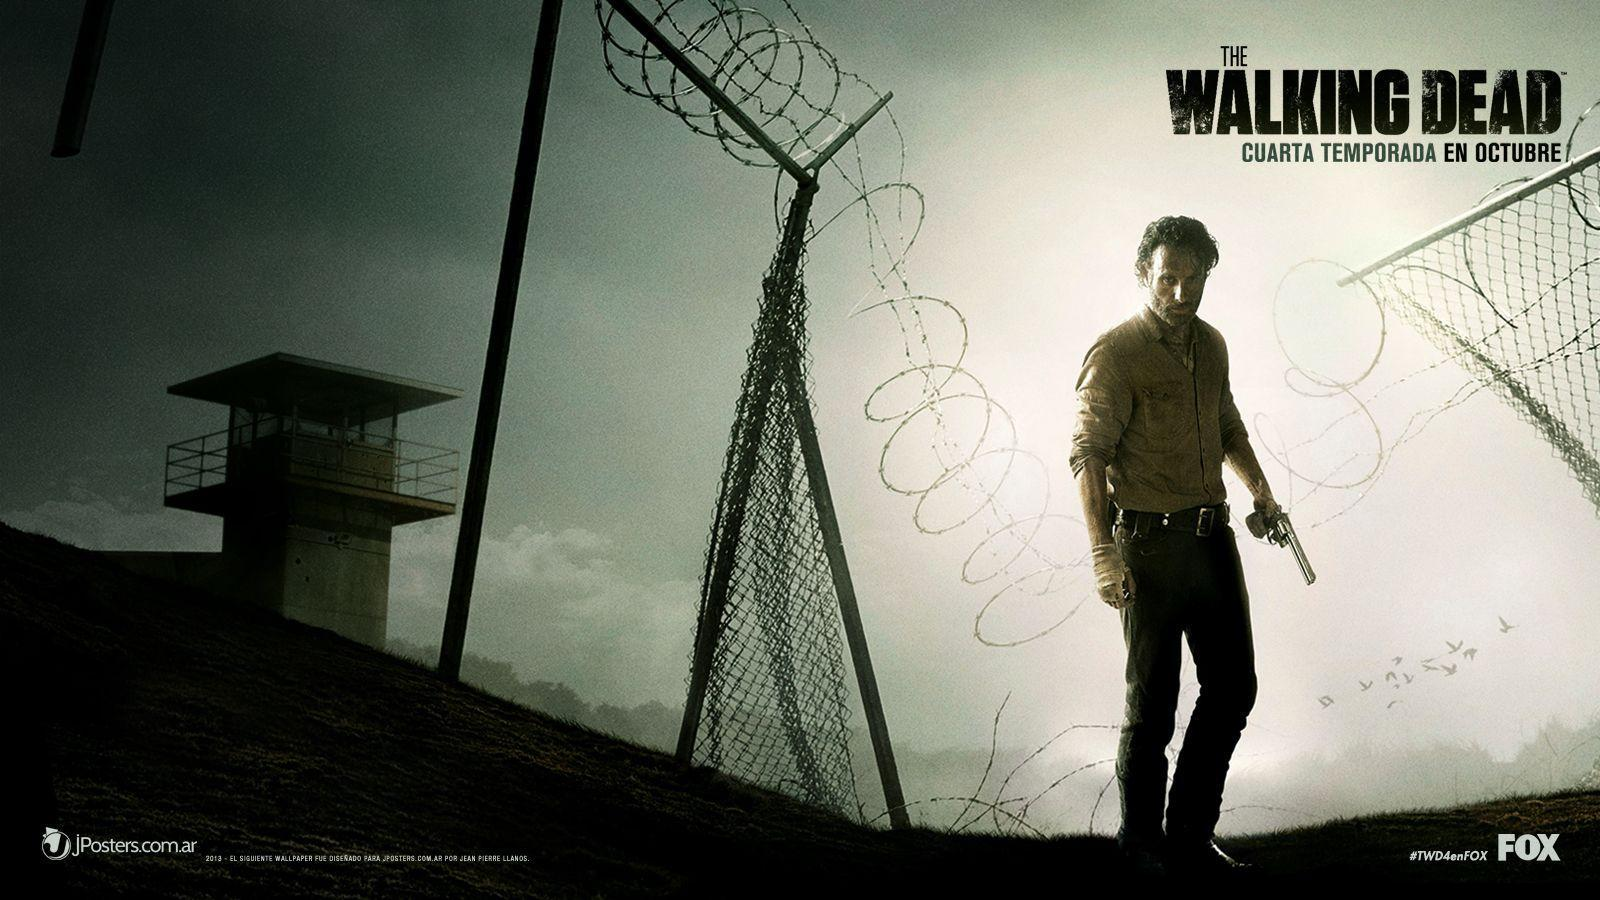 The Walking Dead 7 Wallpapers - Wallpaper Cave